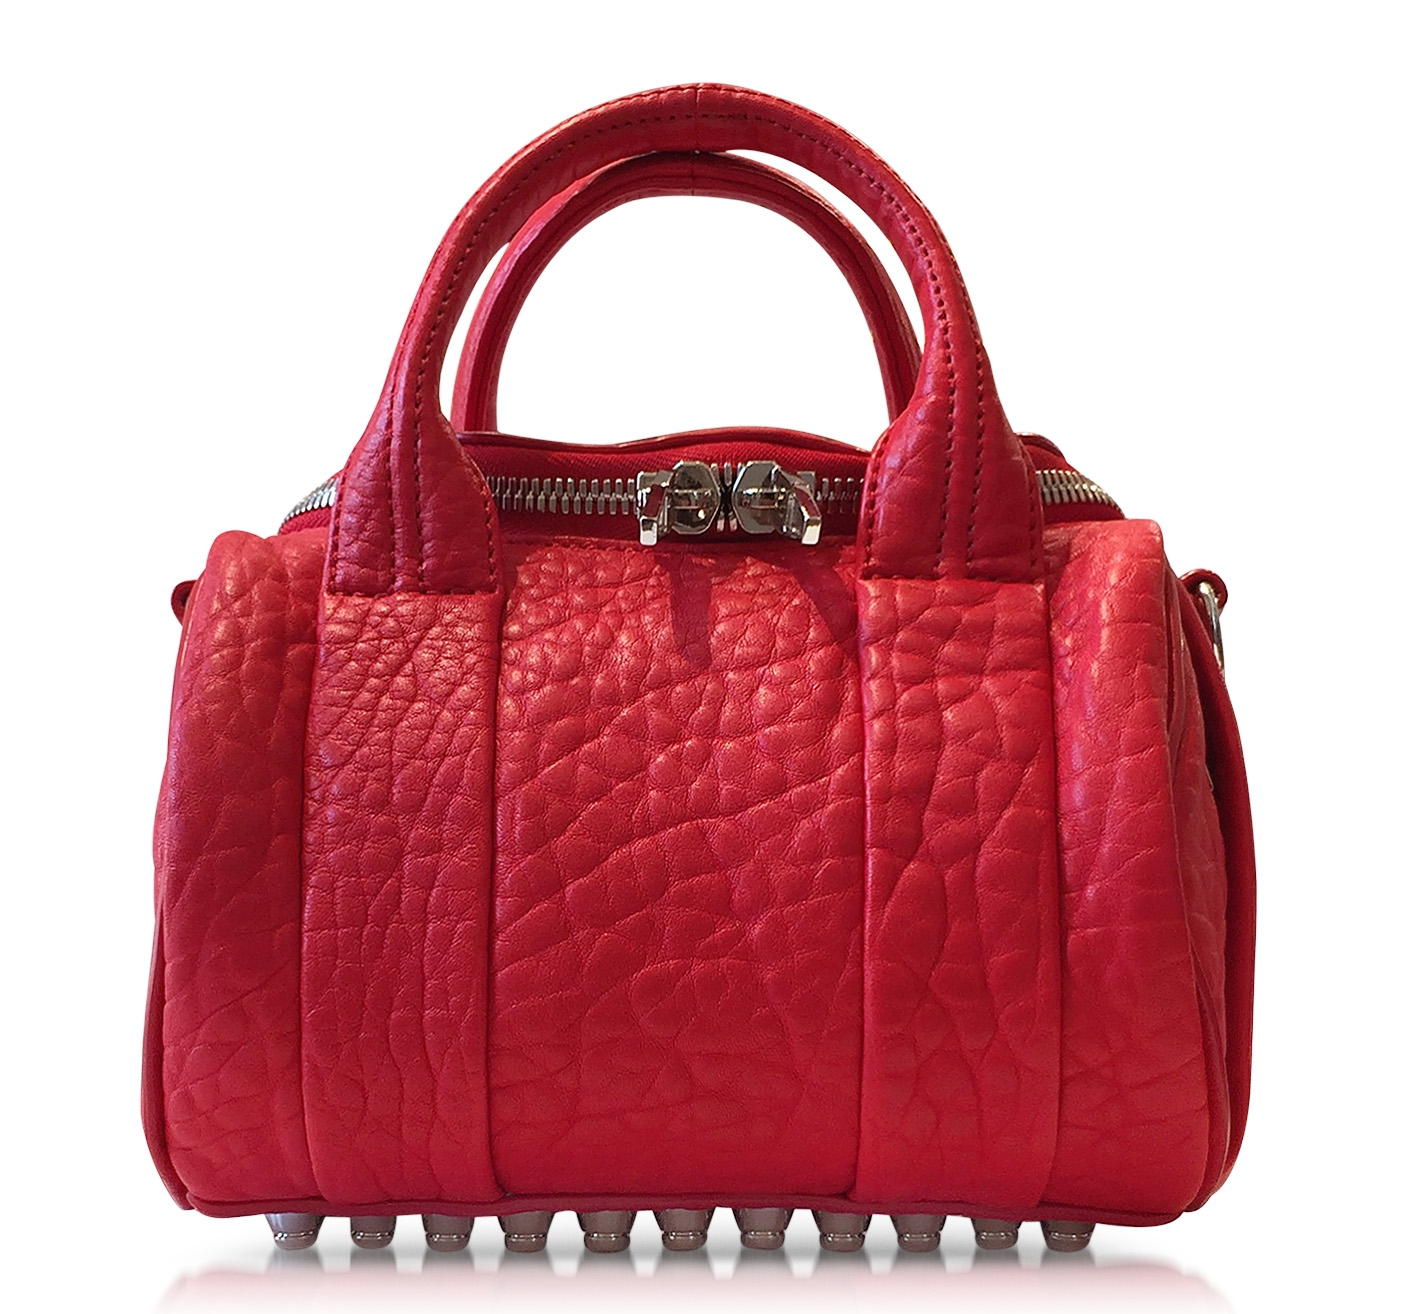 Designer handbags - Alexander Wang Mini Rockie Coral Pebbled Leather Satchel